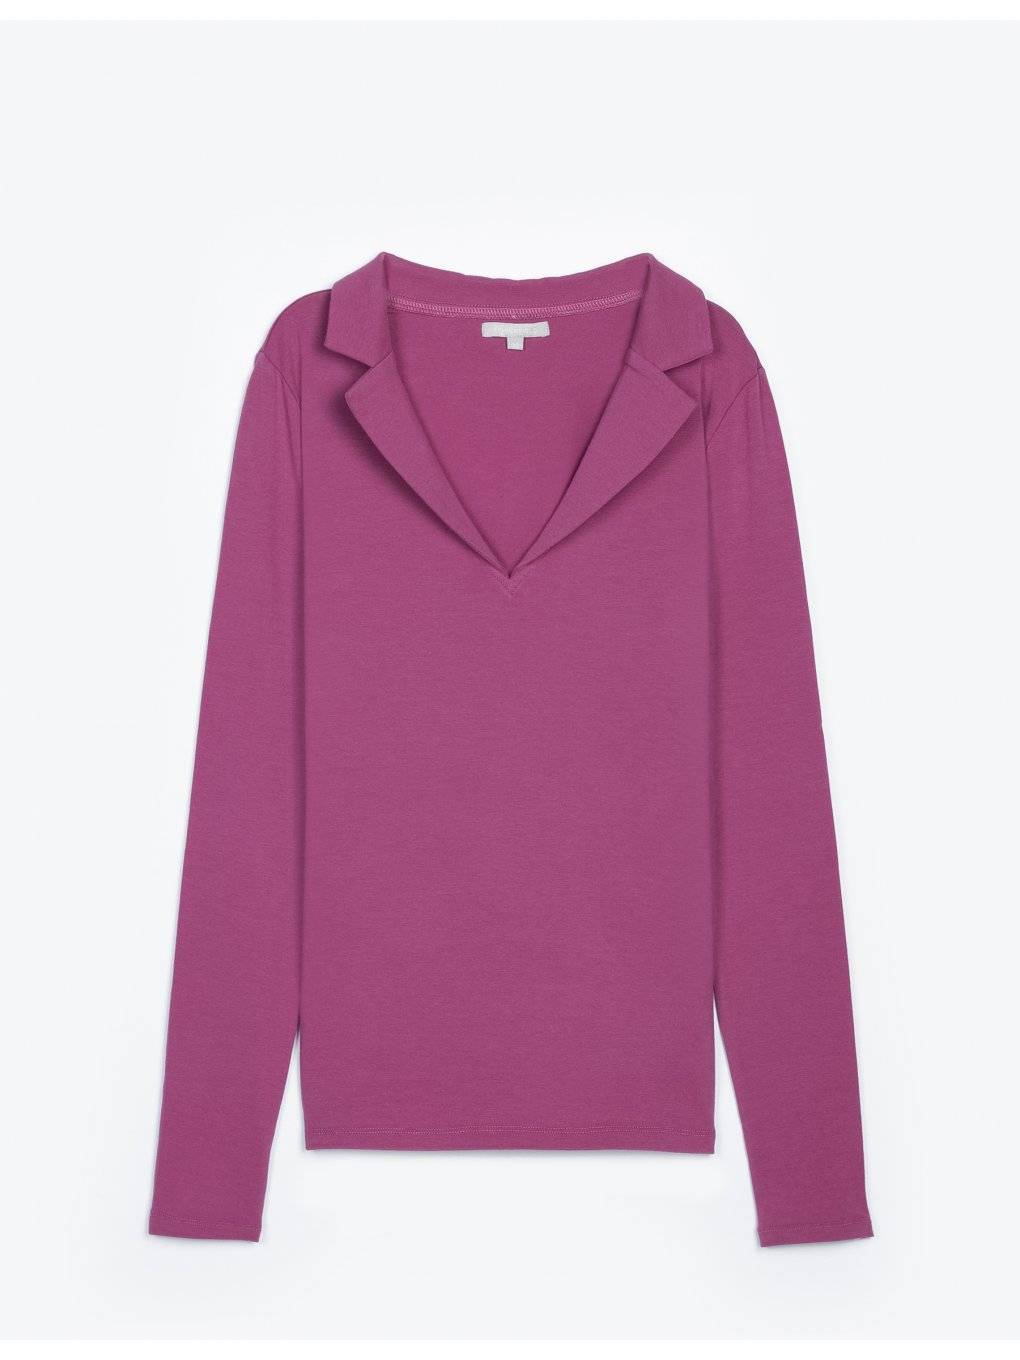 Long sleeve t-shirt with lapels